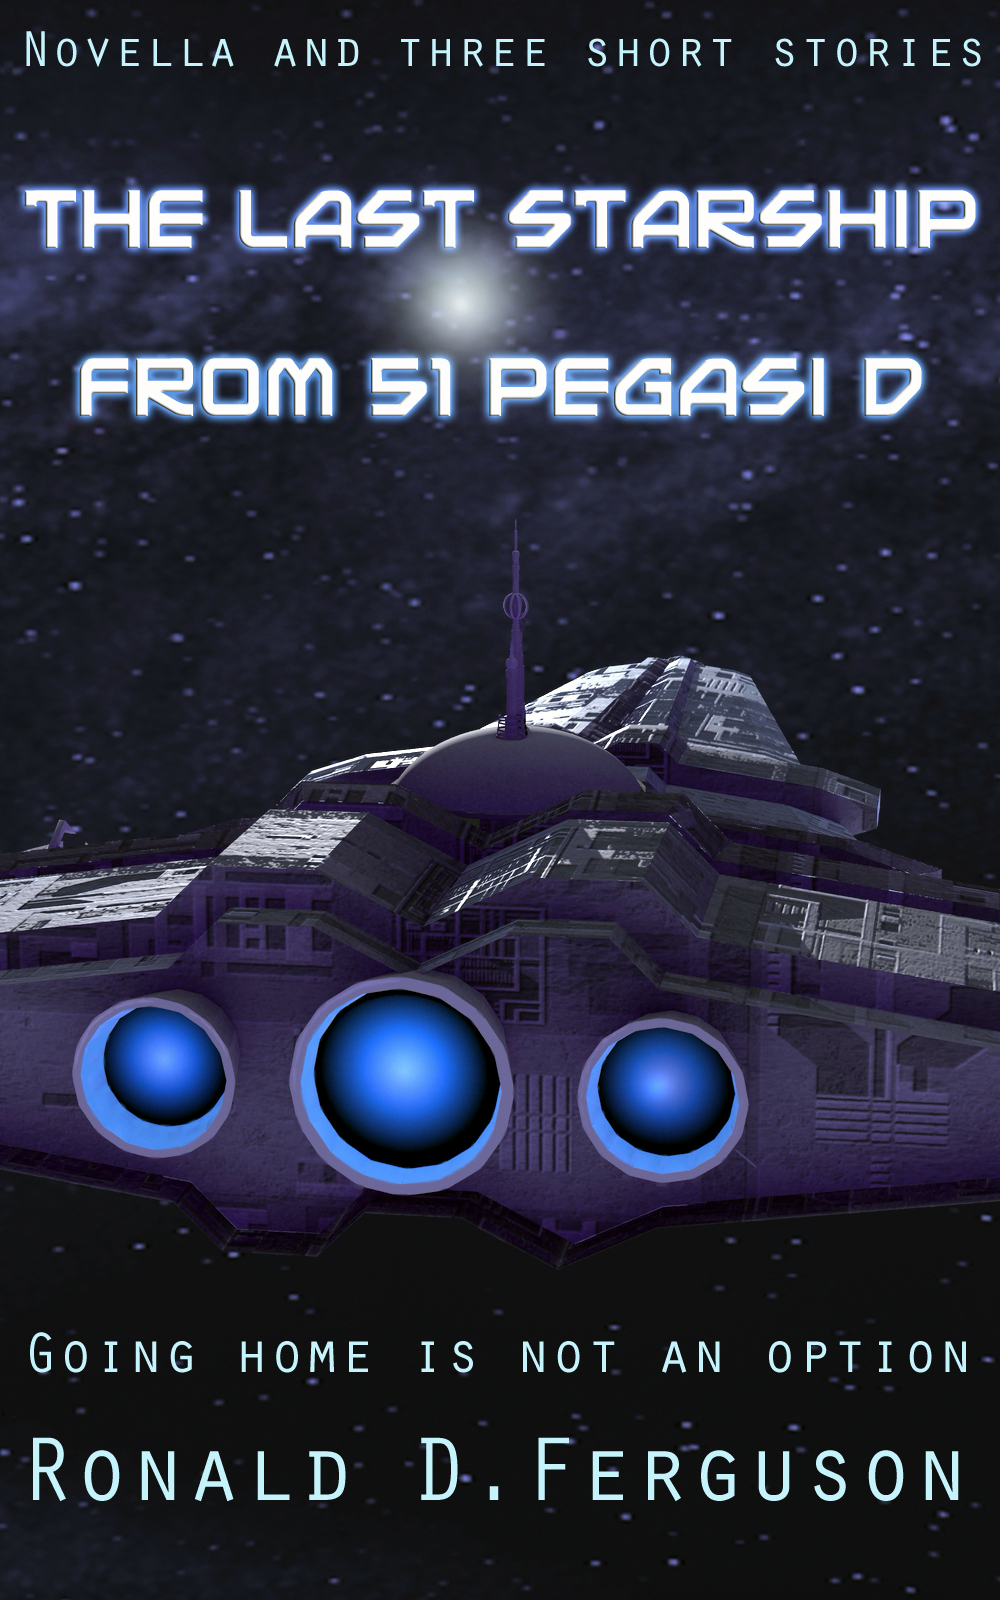 The Last Starship from 51 Pegasi D